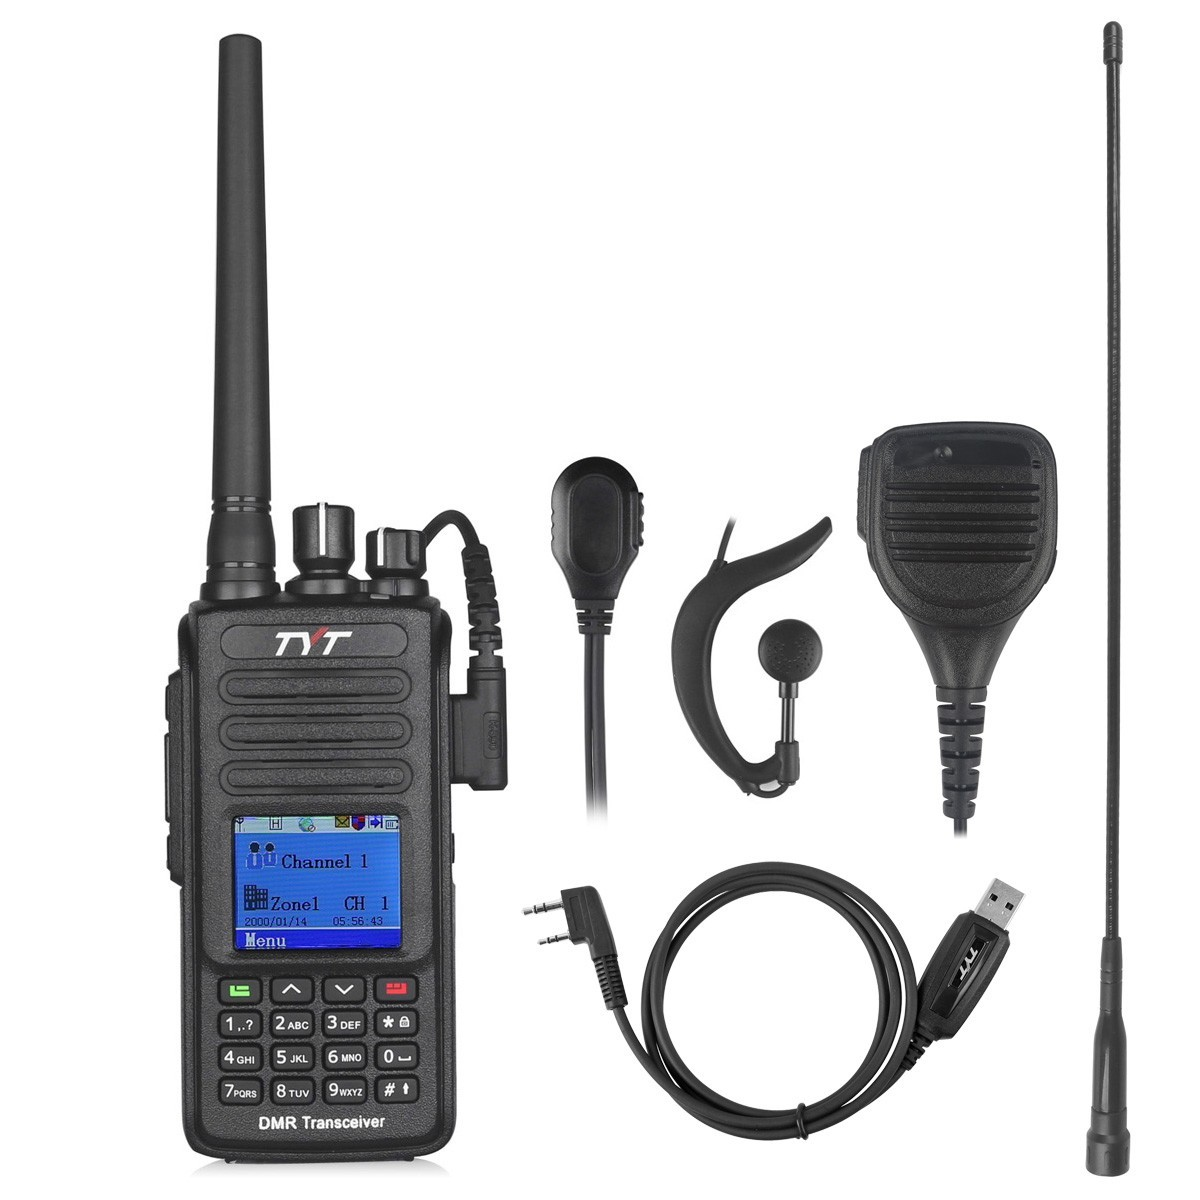 TYT MD-390G Waterproof DMR Digital Radio 400-480UHF 2200mAh + GPS+ Remote Speaker